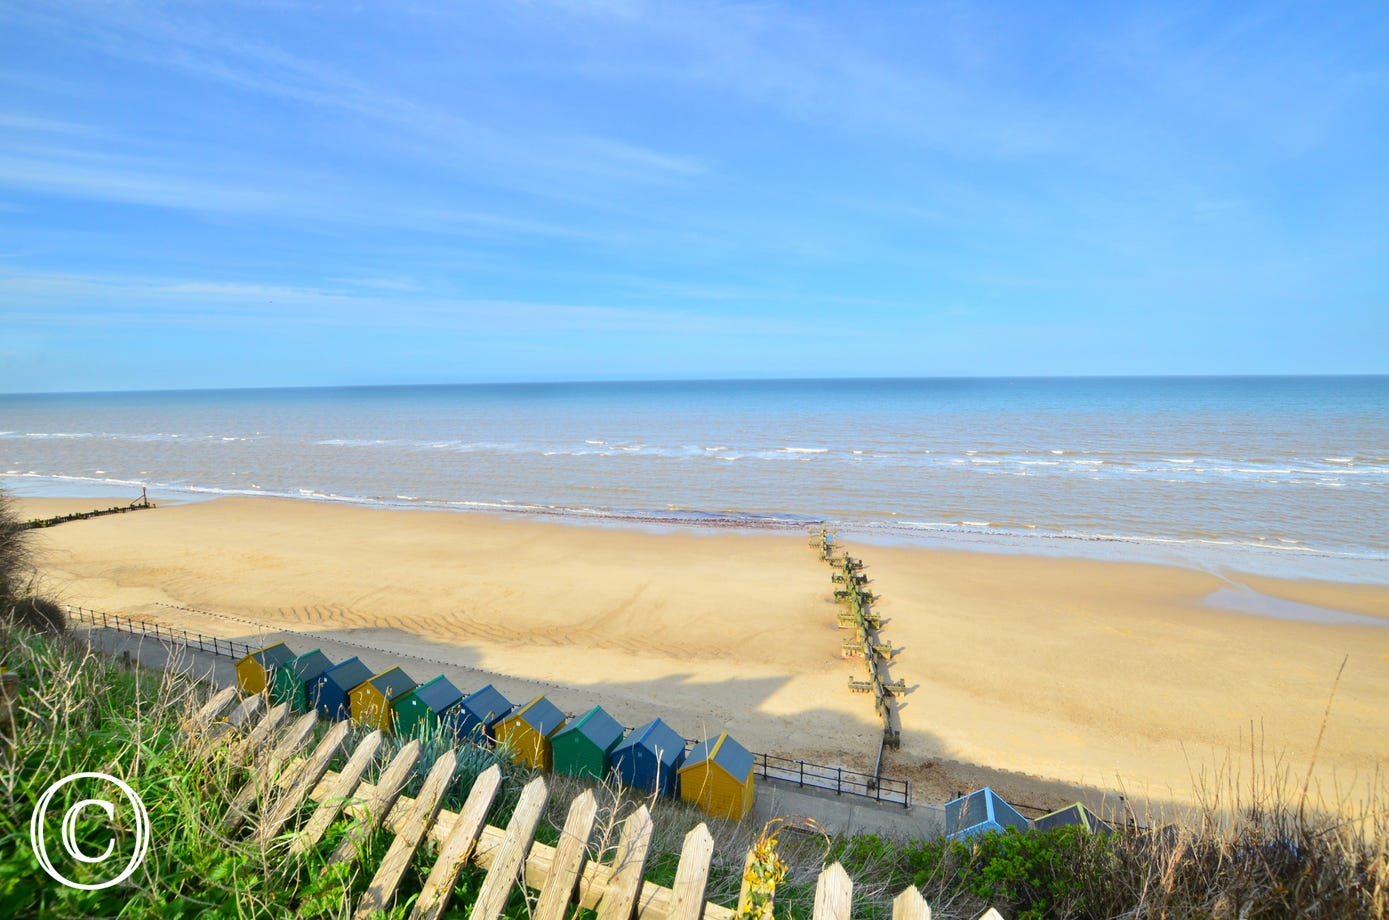 Blue Flag beach at Mundesley